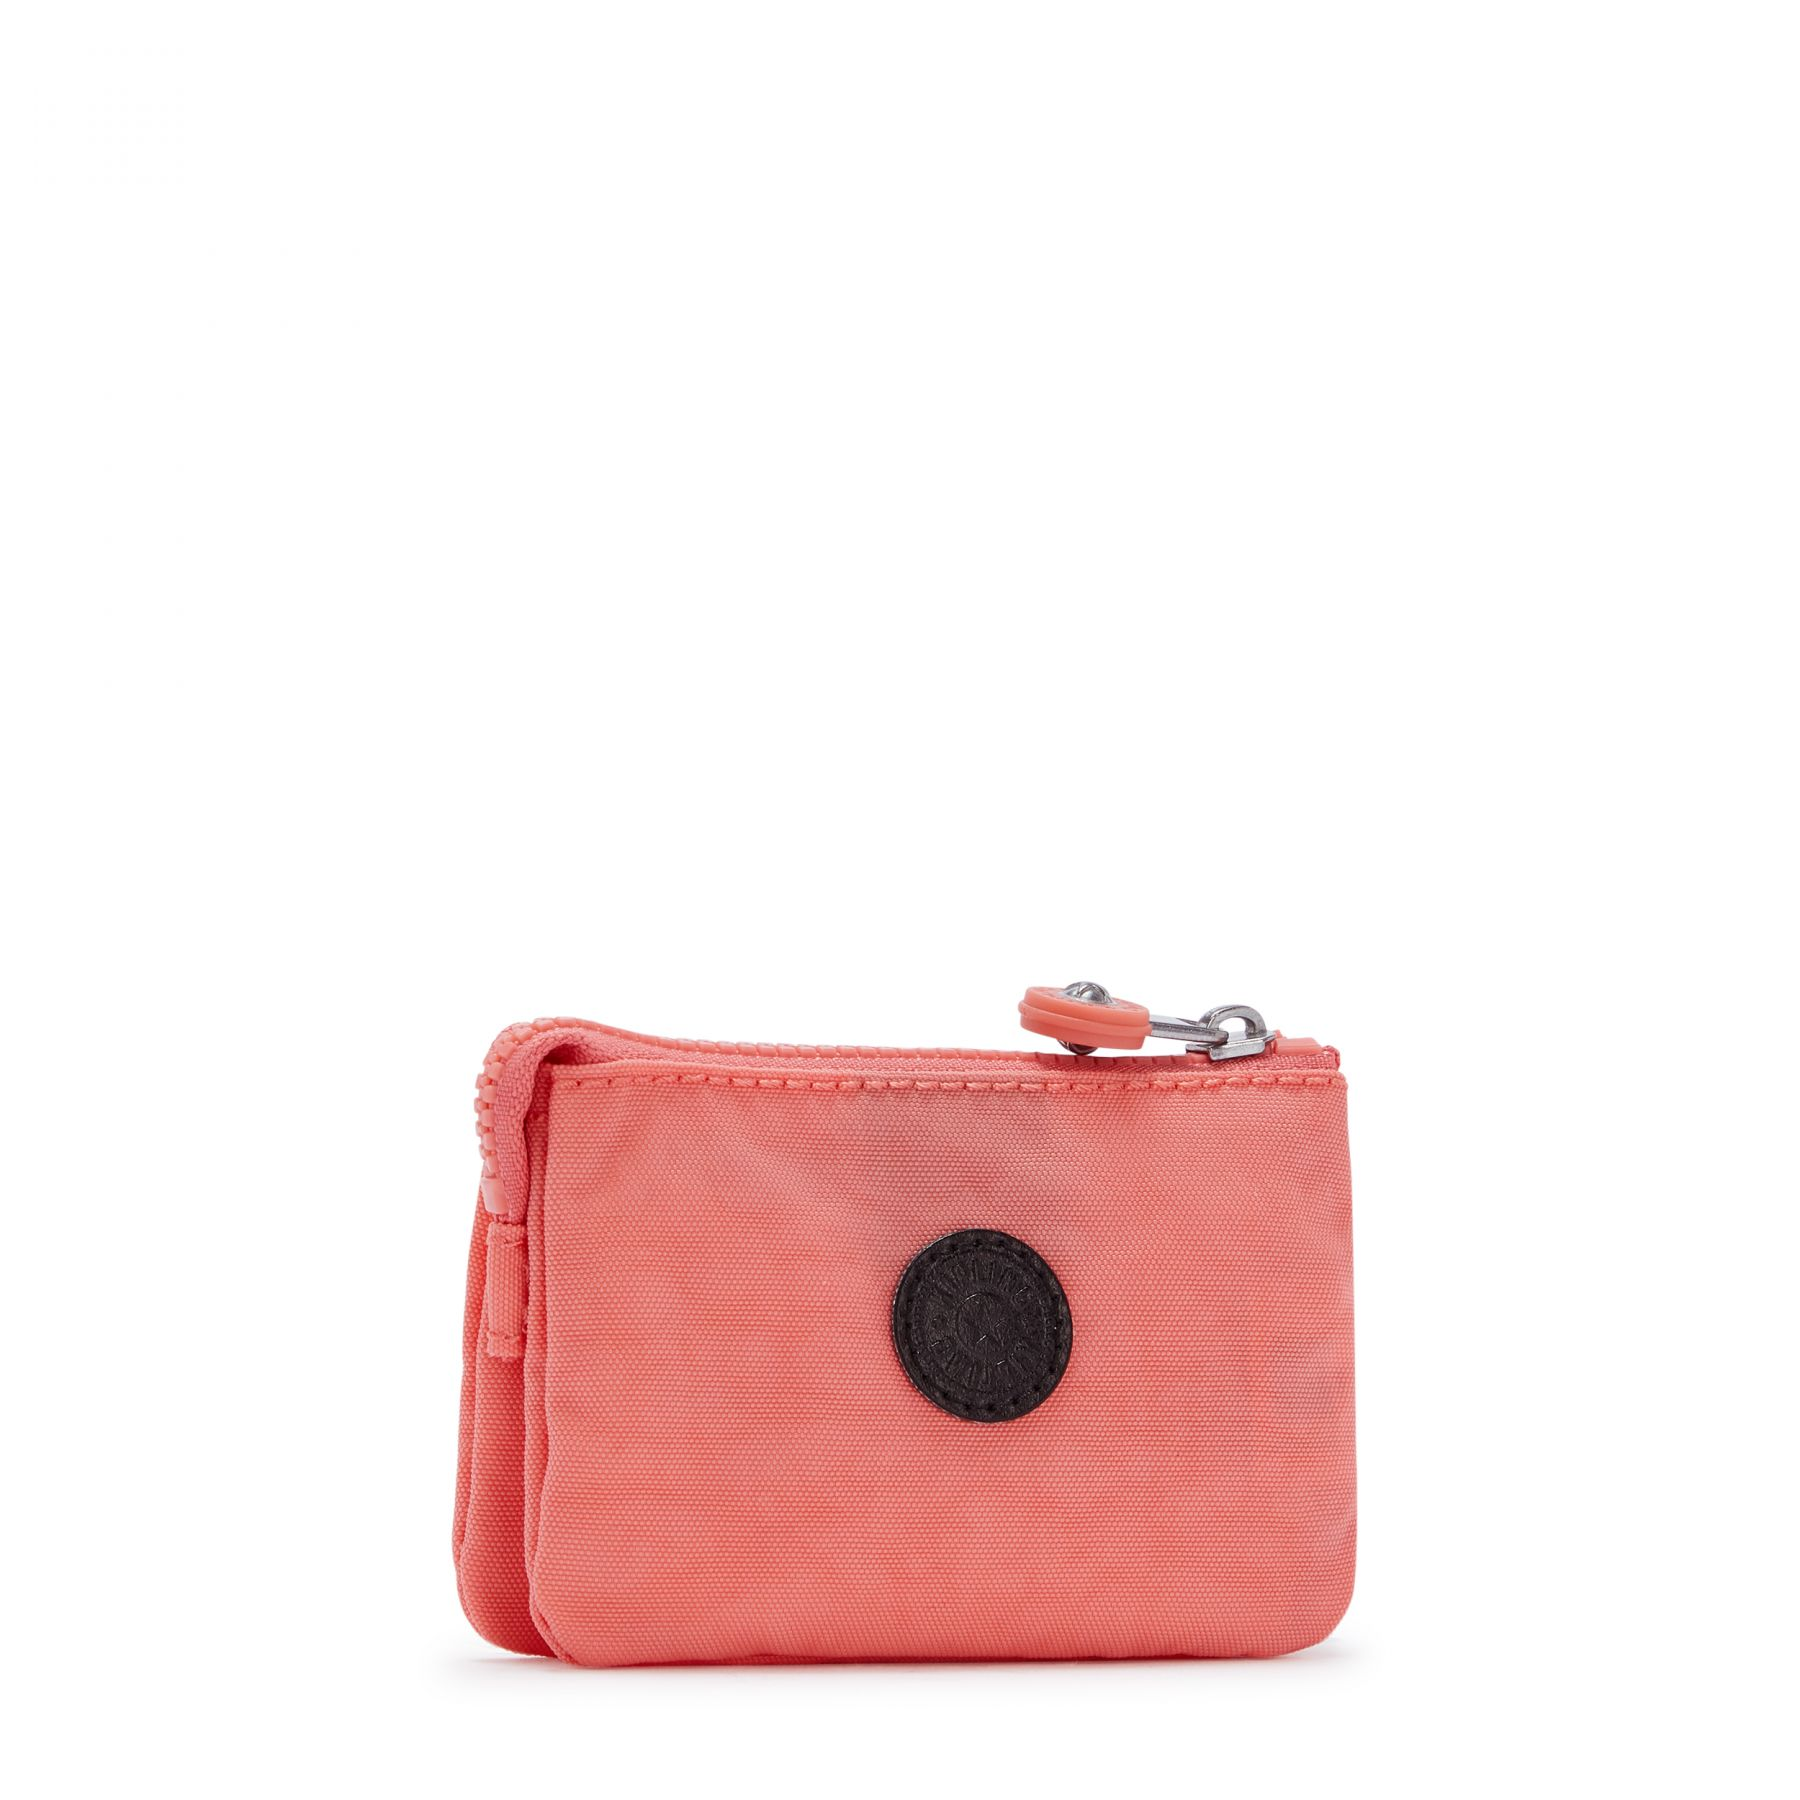 Accessori Mini Creativity Kipling Kipling | Accessori | MINICREATIVITYCORALHEART